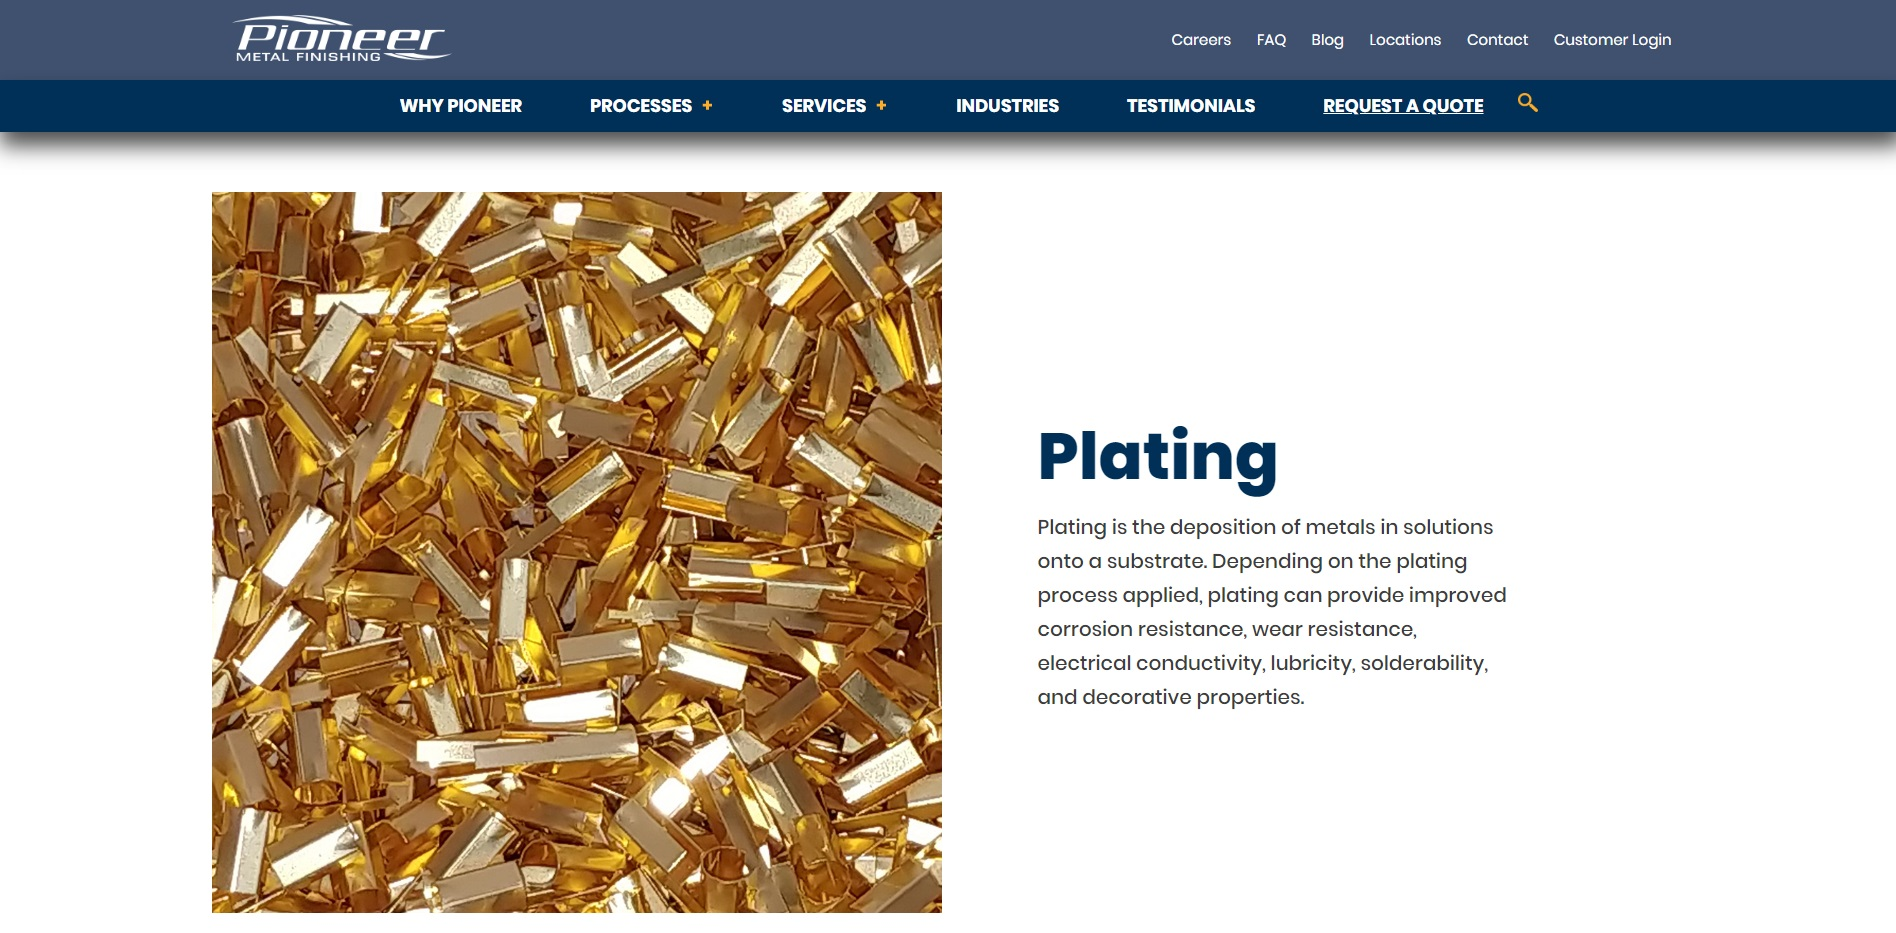 Pioneer Metal Finishing Corporation